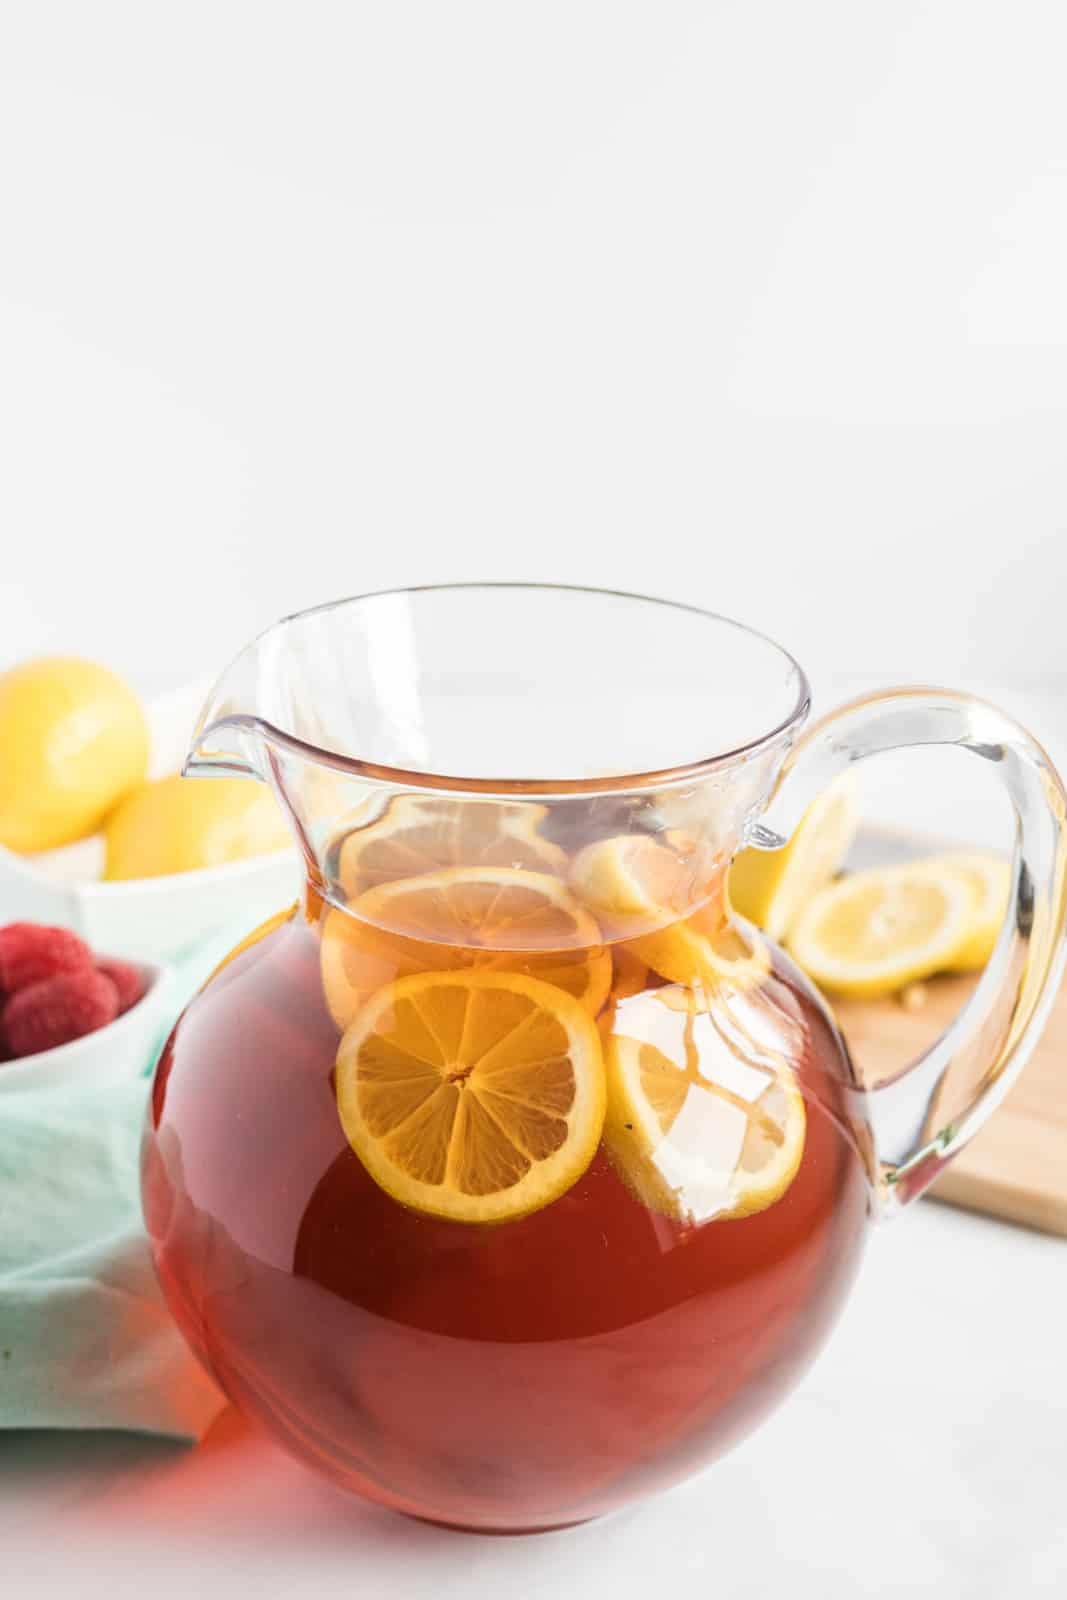 Sweet Tea in large pitcher with lemon slices